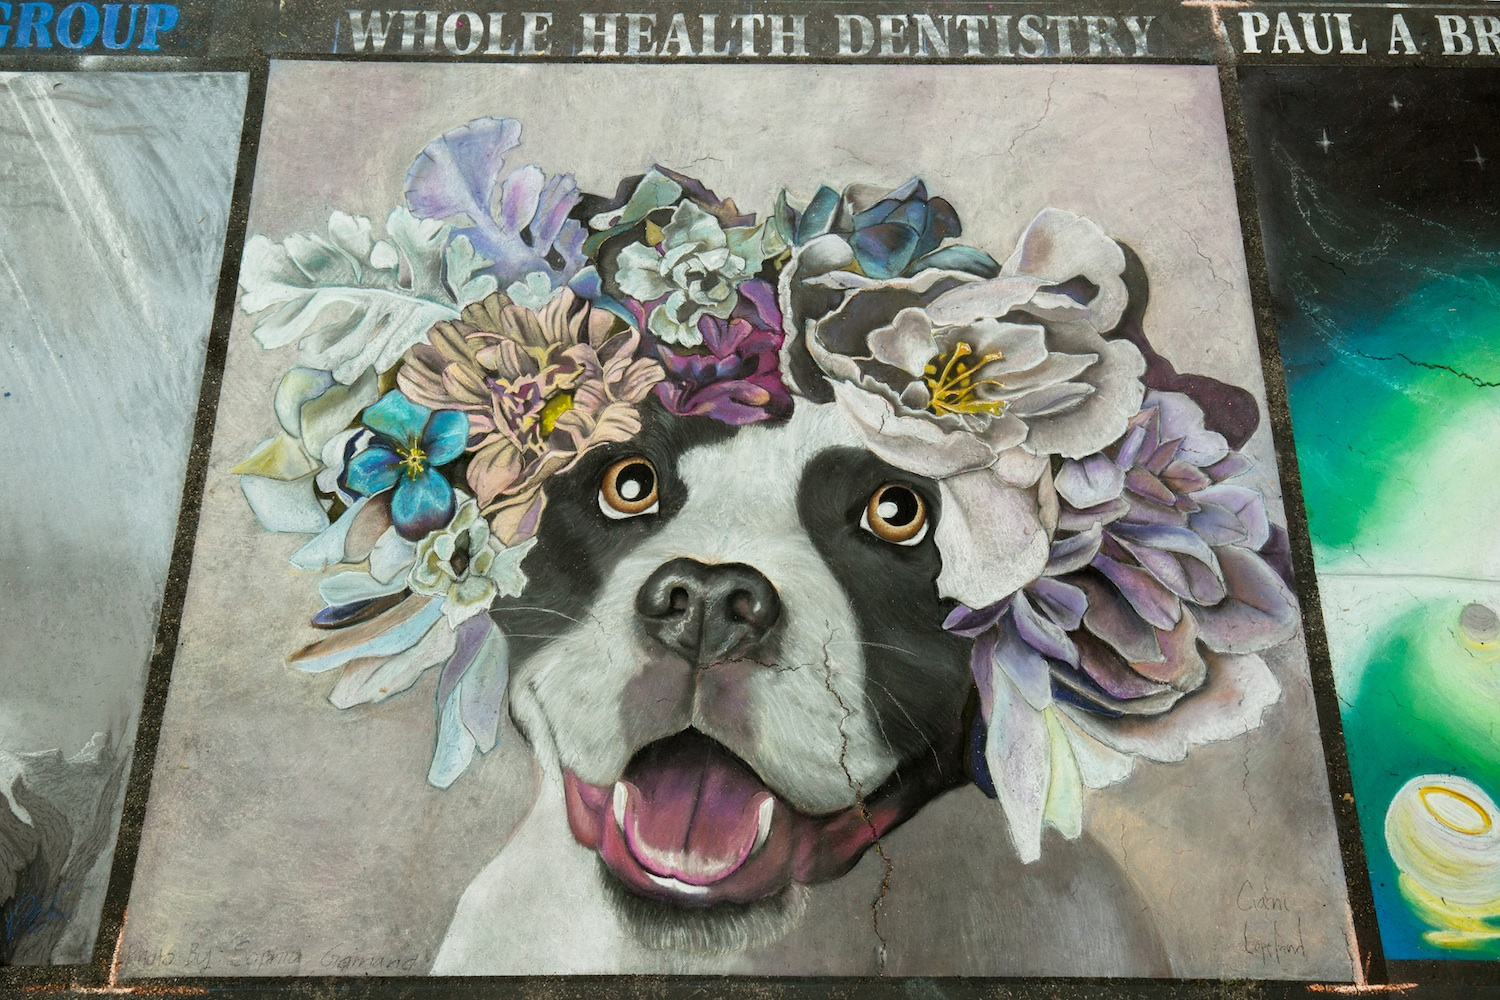 Amy-284-1731_Whole_Health_Dentistry.jpg